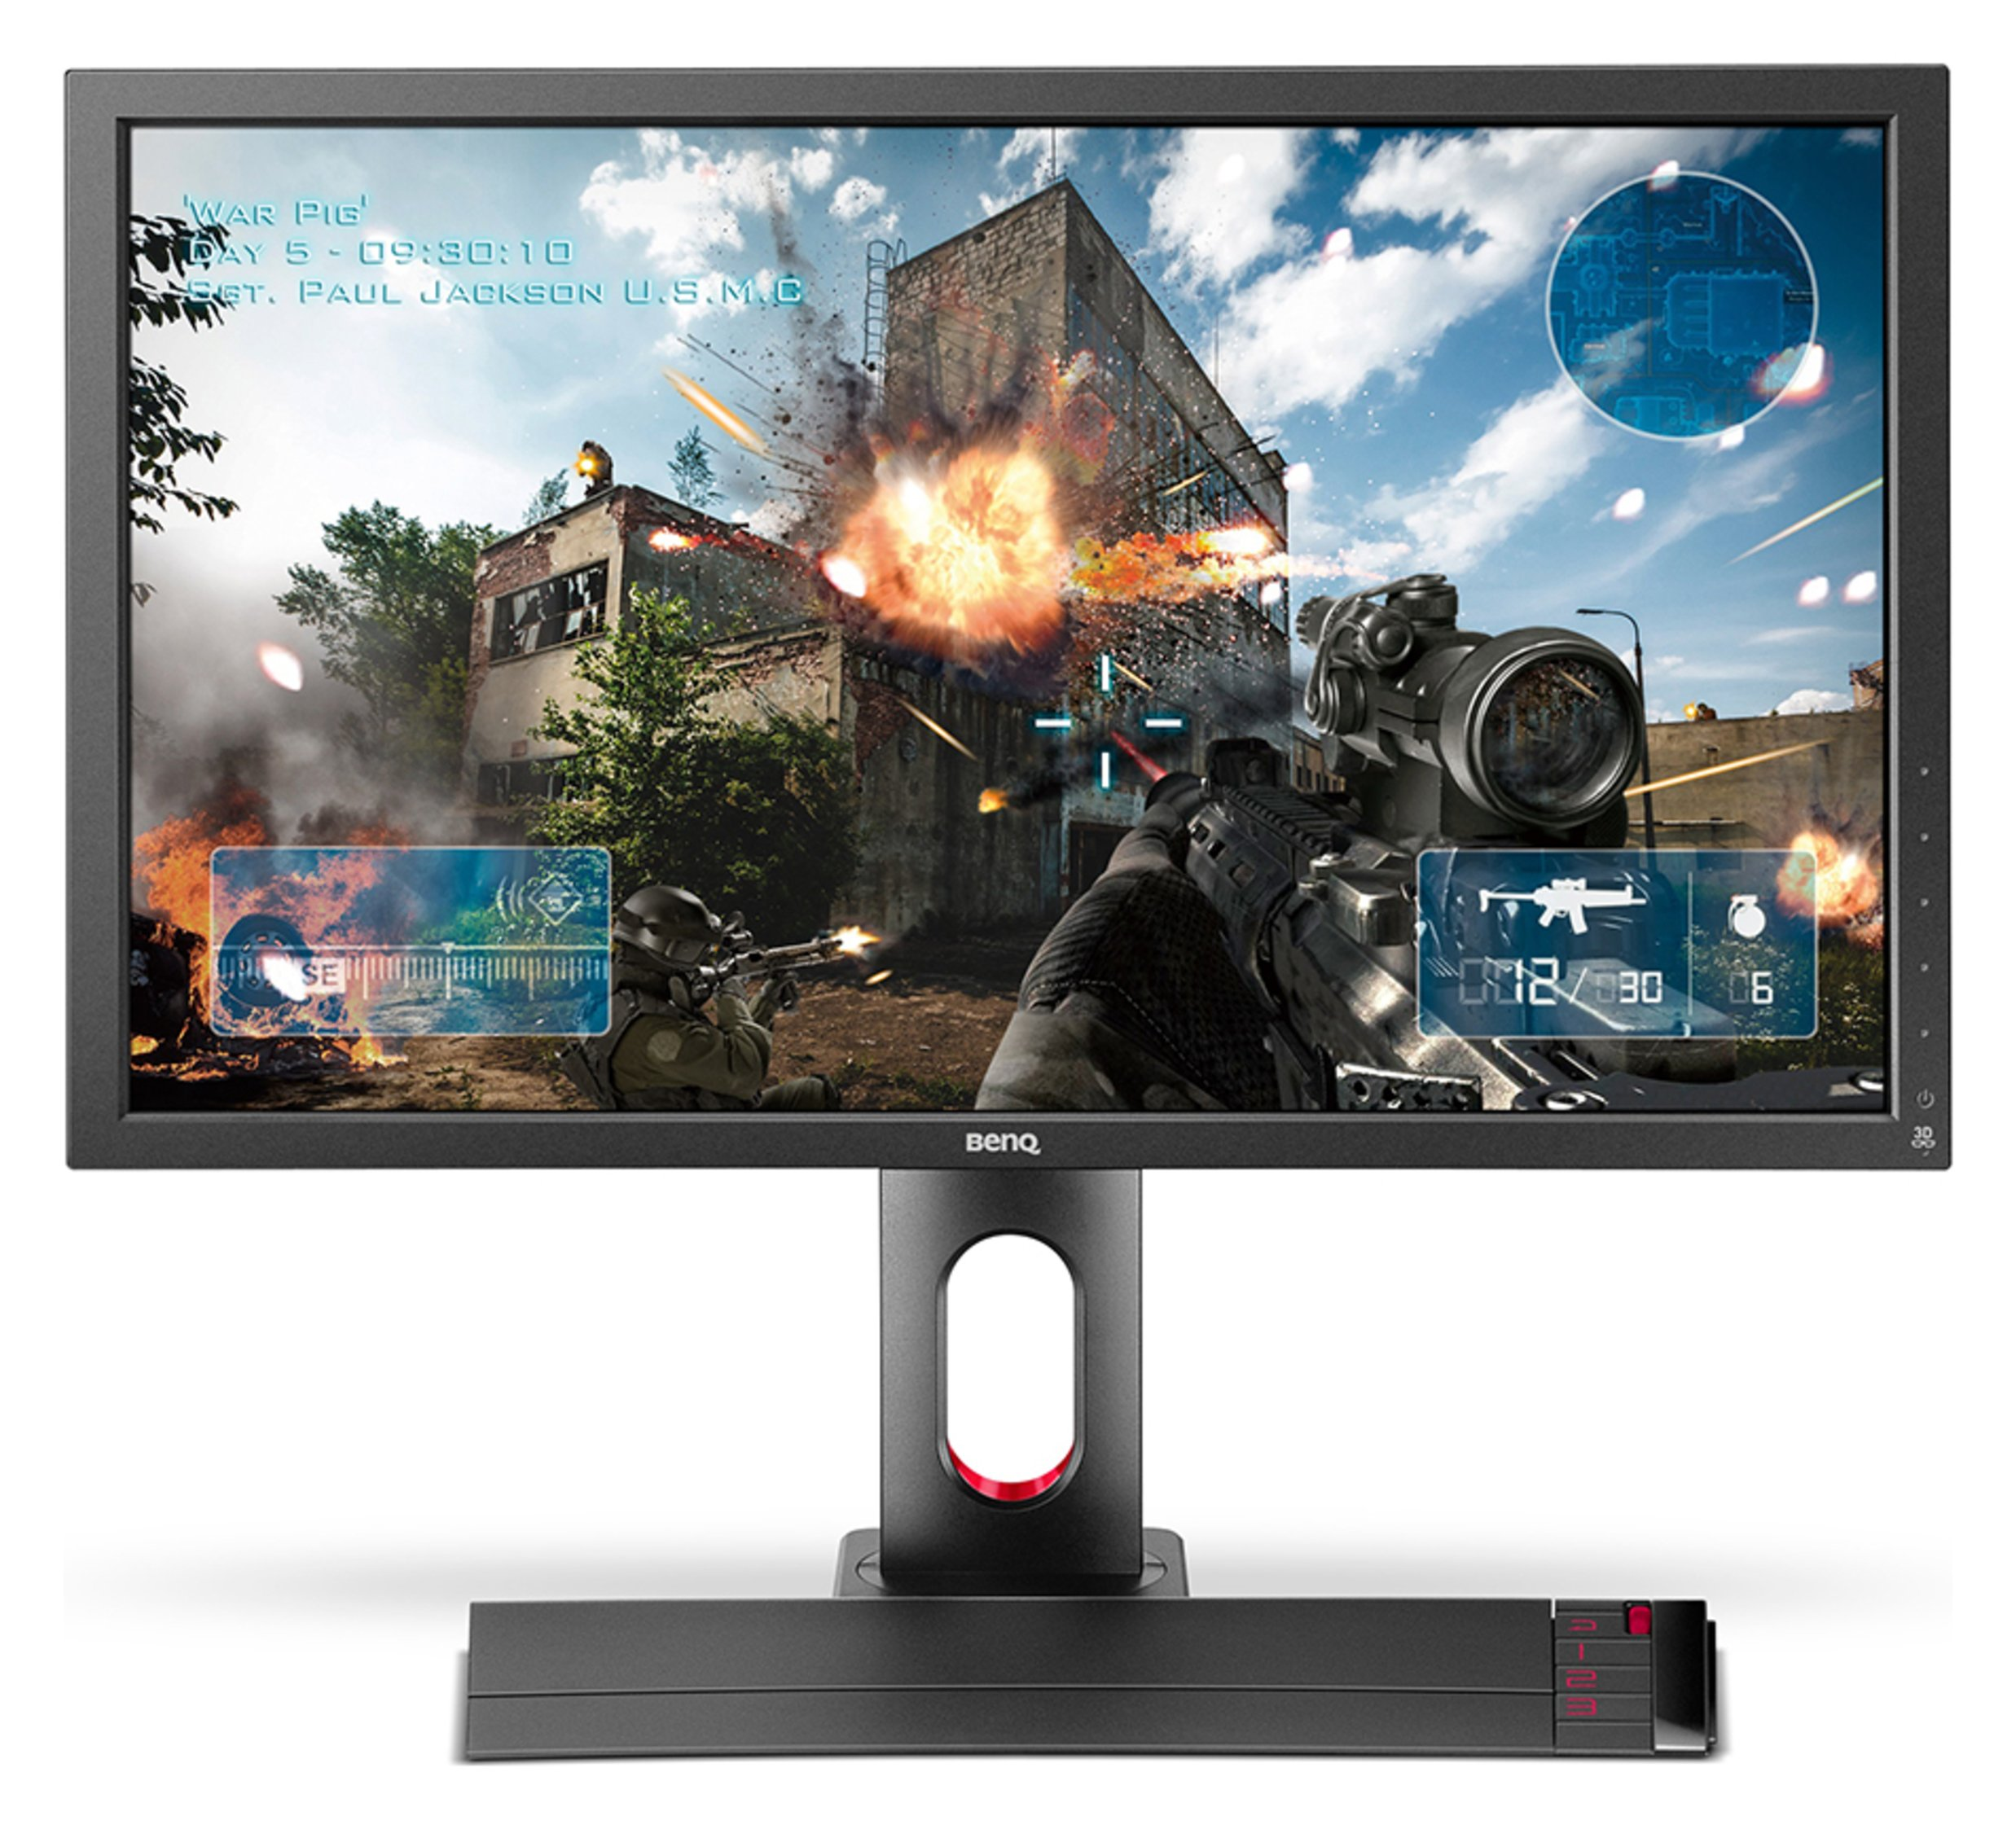 Image of BenQ Zowie XL2720 27 Inch Gaming PC Monitor.